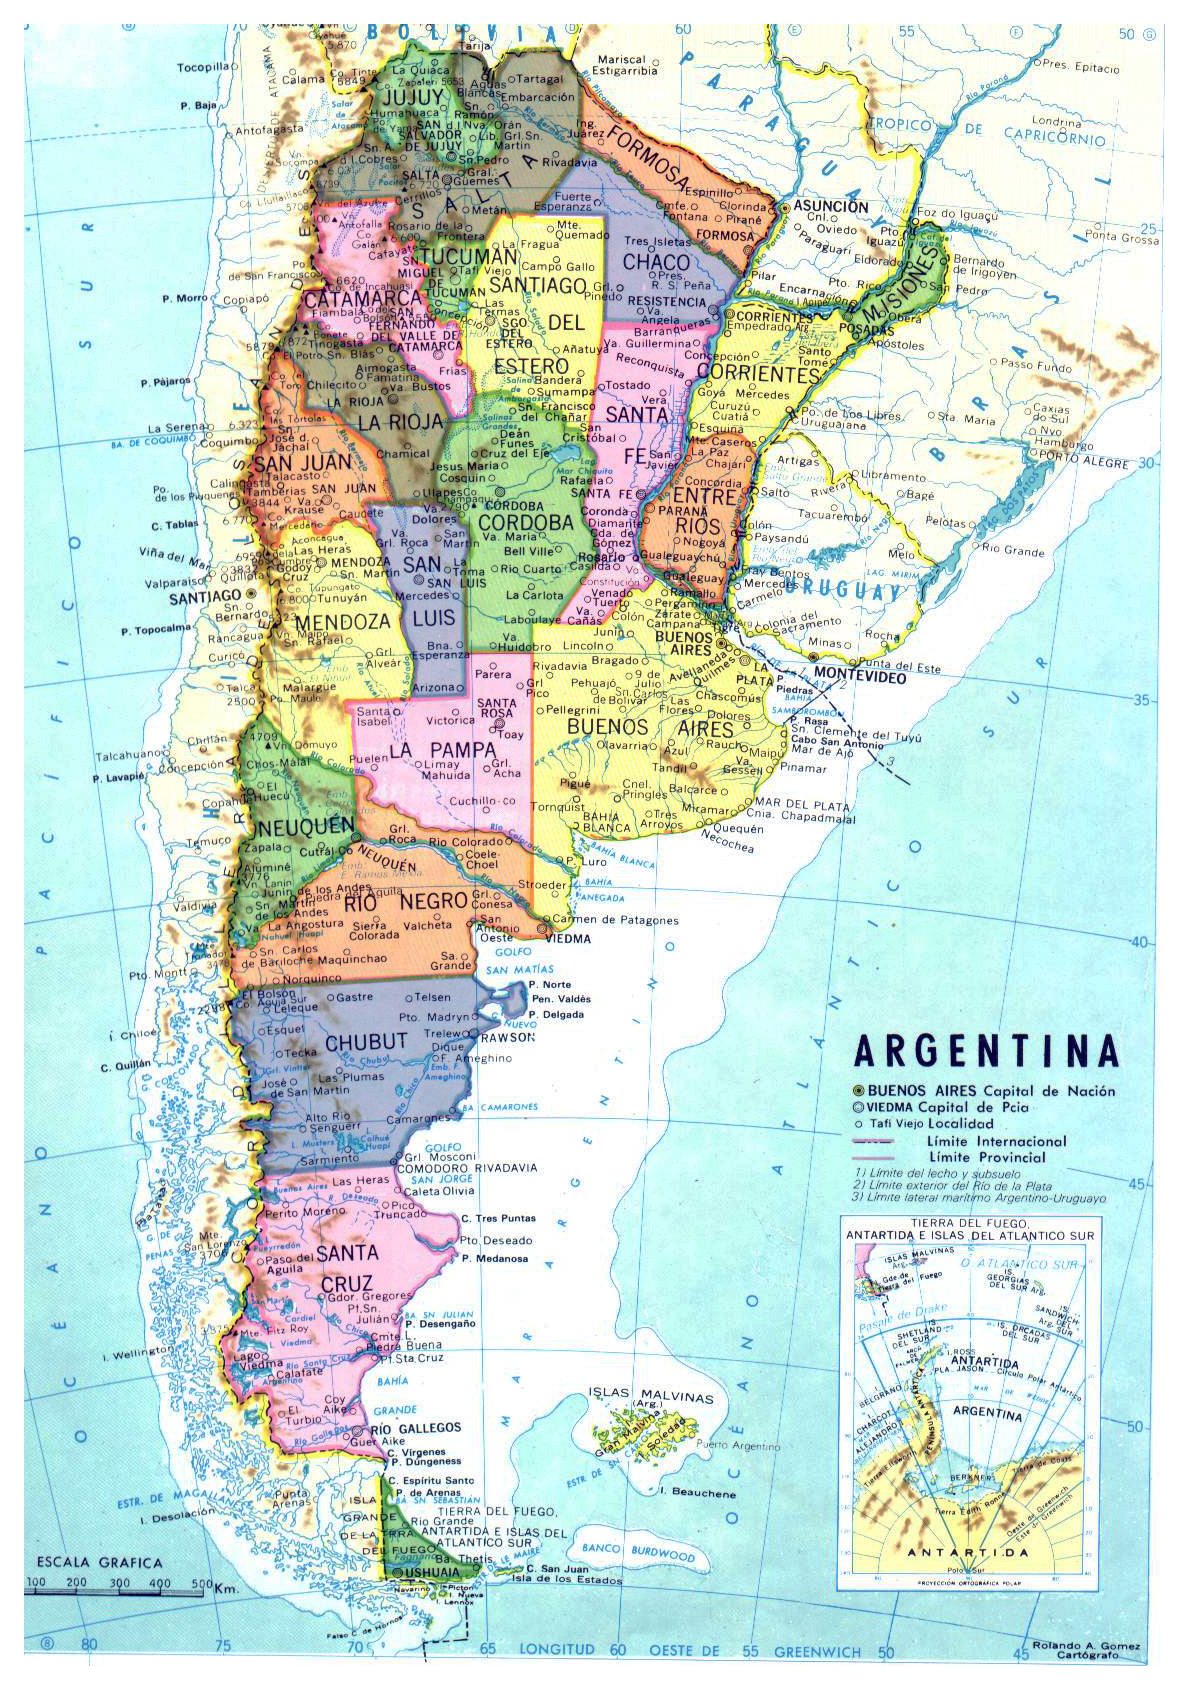 Detailed Administrative Map Of Argentina Argentina Detailed - Argentina map detailed